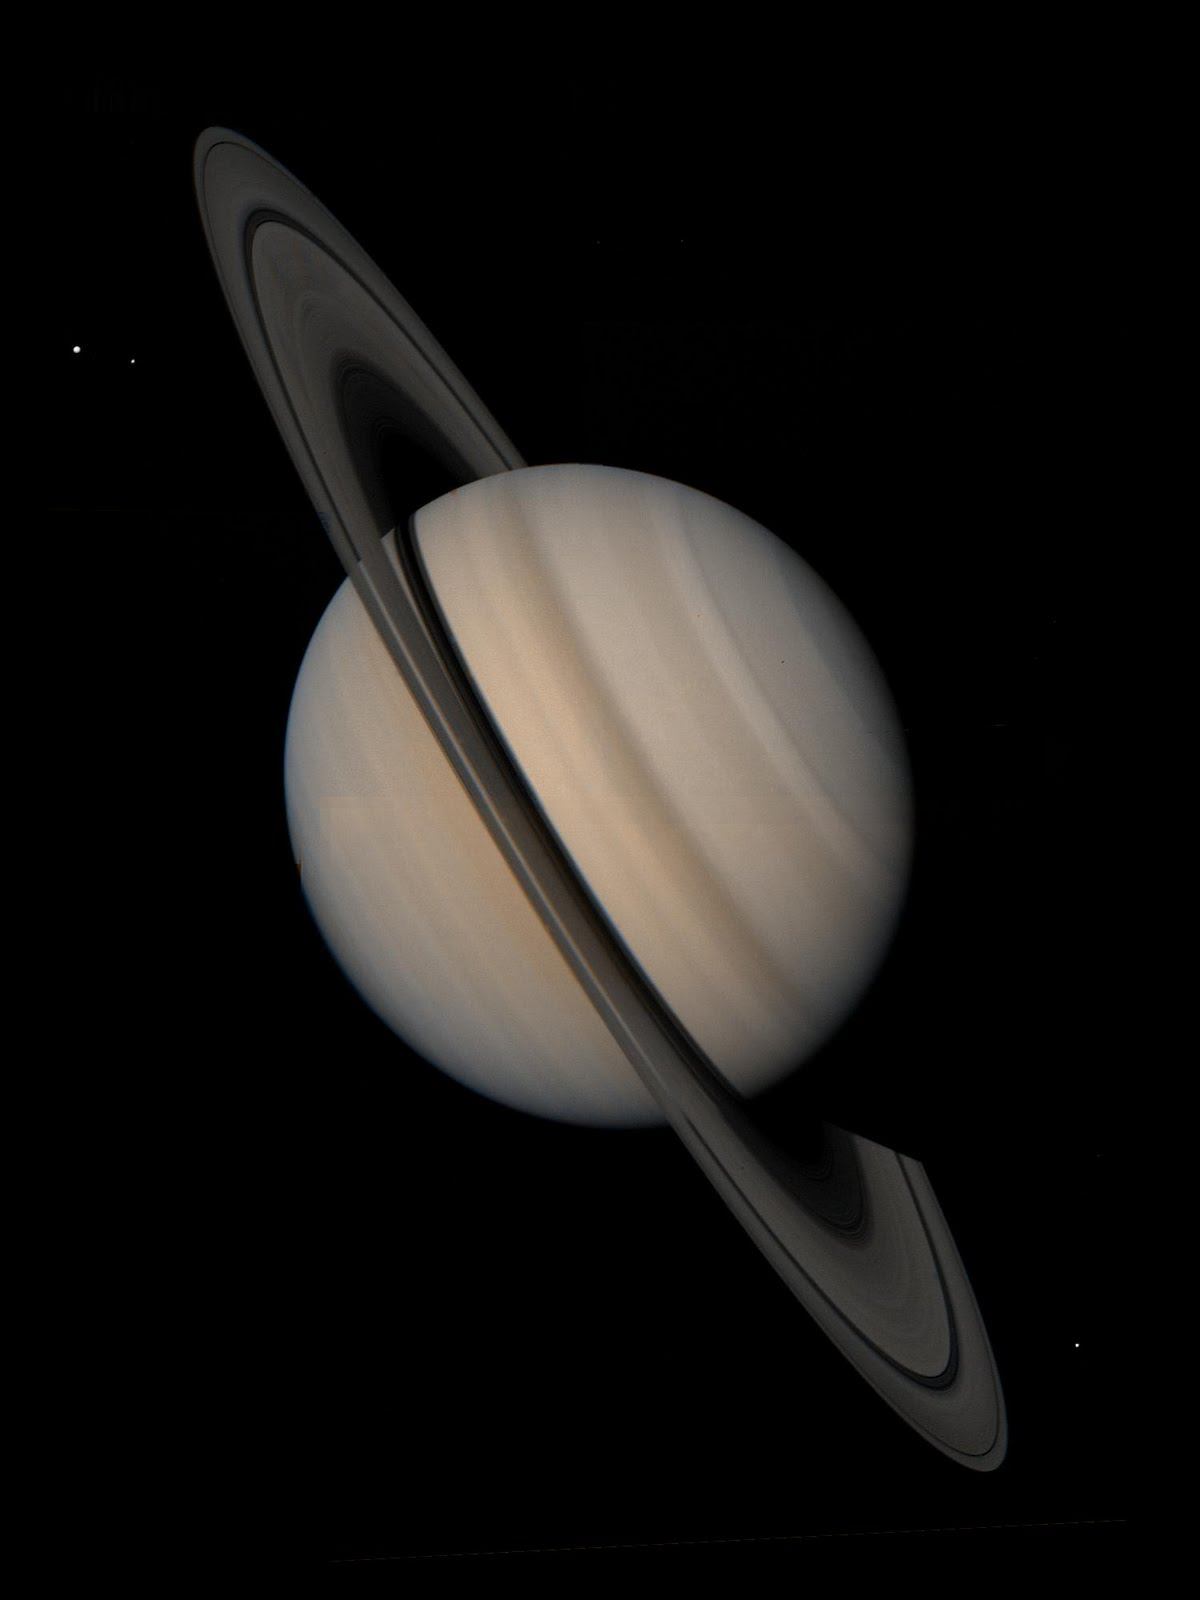 Saturn Hq Wallpapers And Pictures Astromic S Backyard